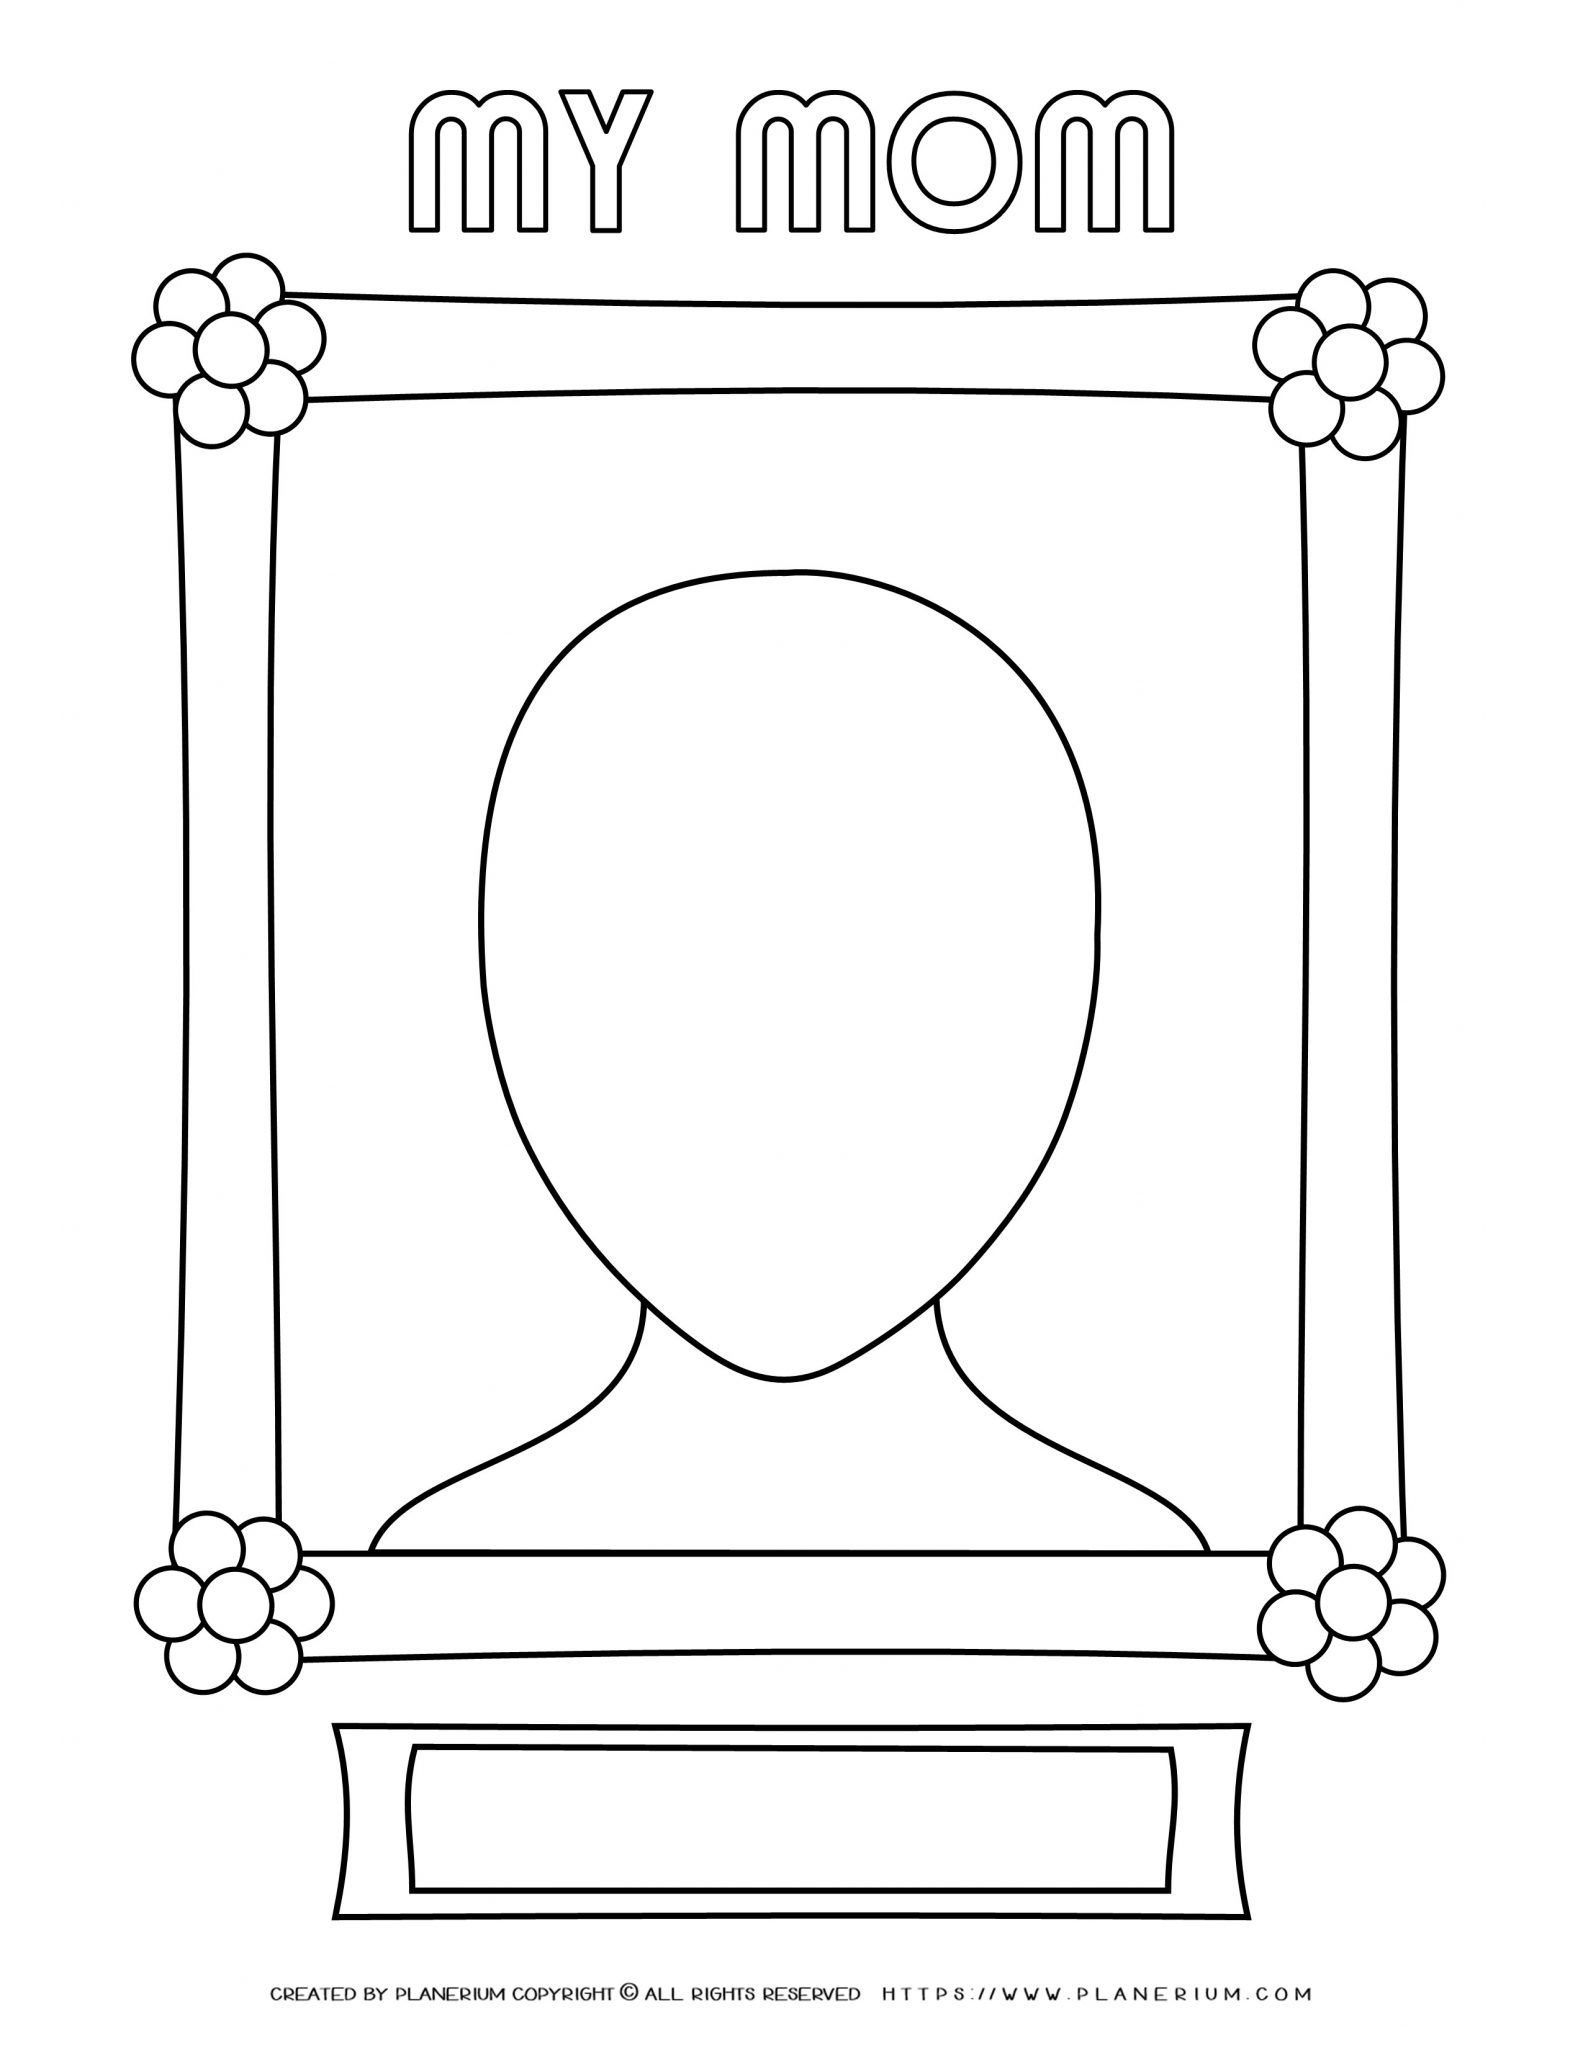 Mother's Day - Coloring Page - My mom portrait